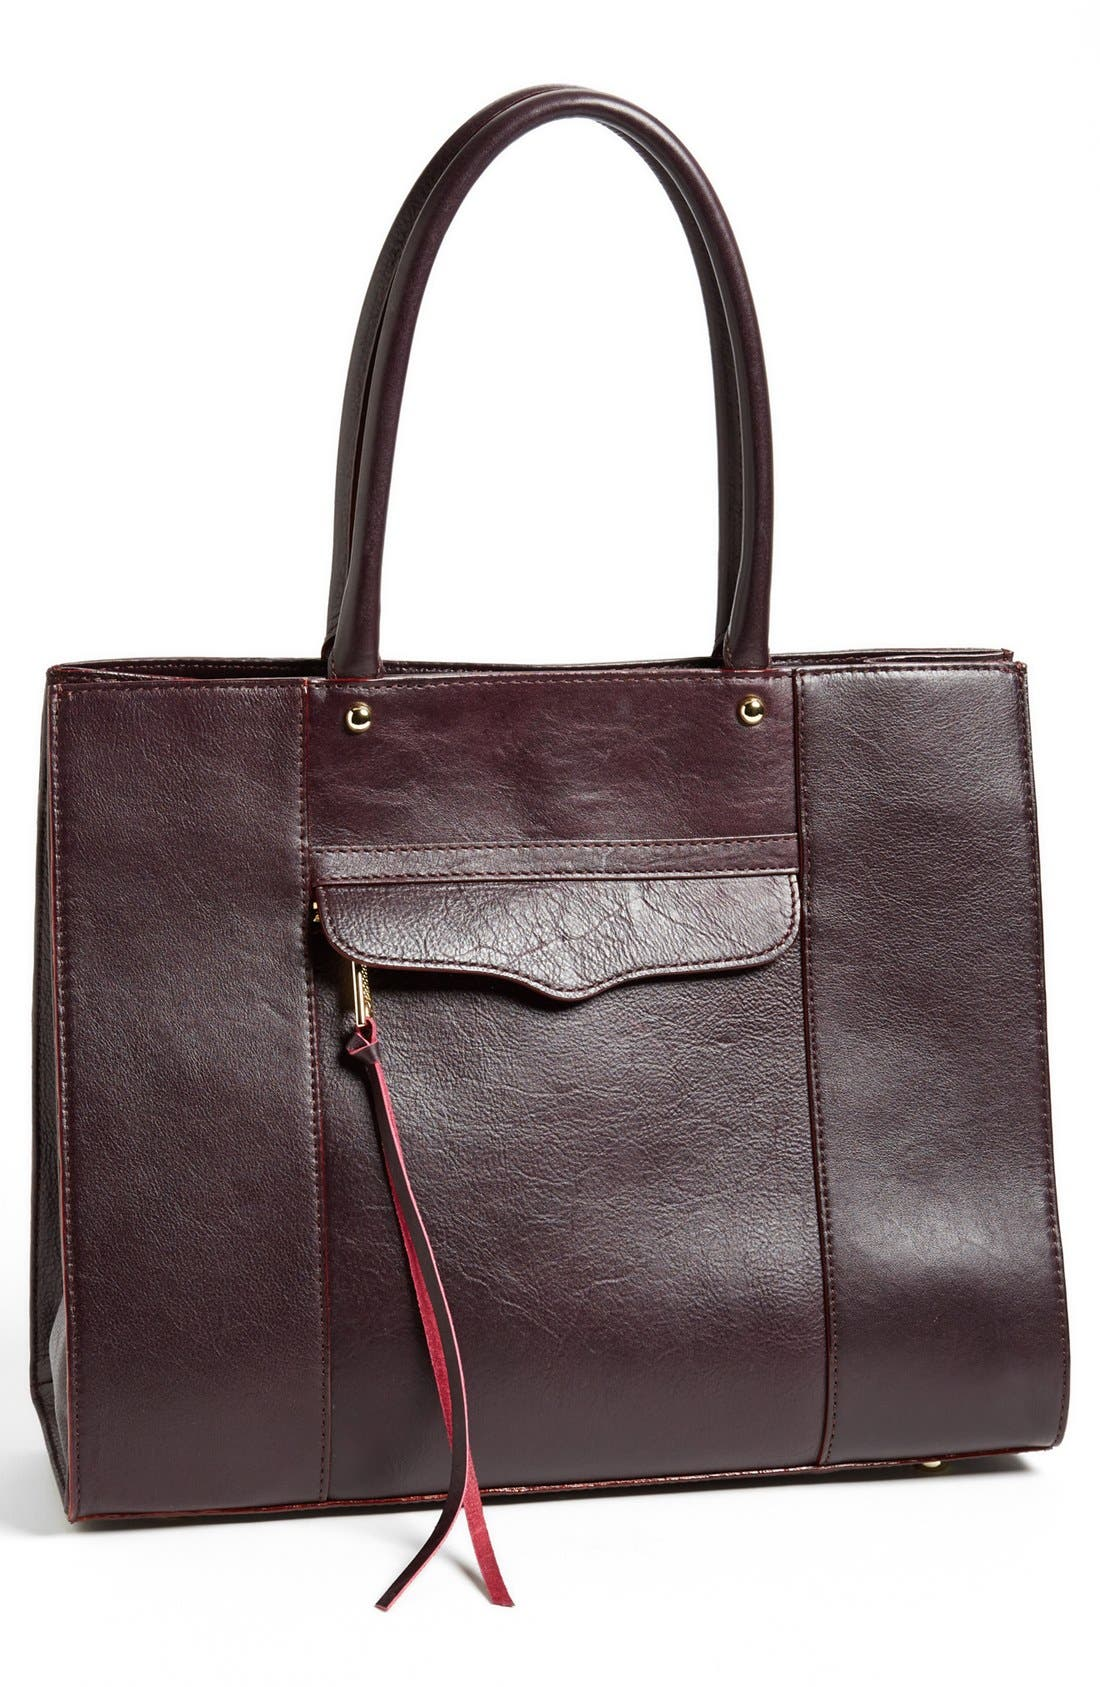 Alternate Image 1 Selected - Rebecca Minkoff 'Medium MAB' Tote